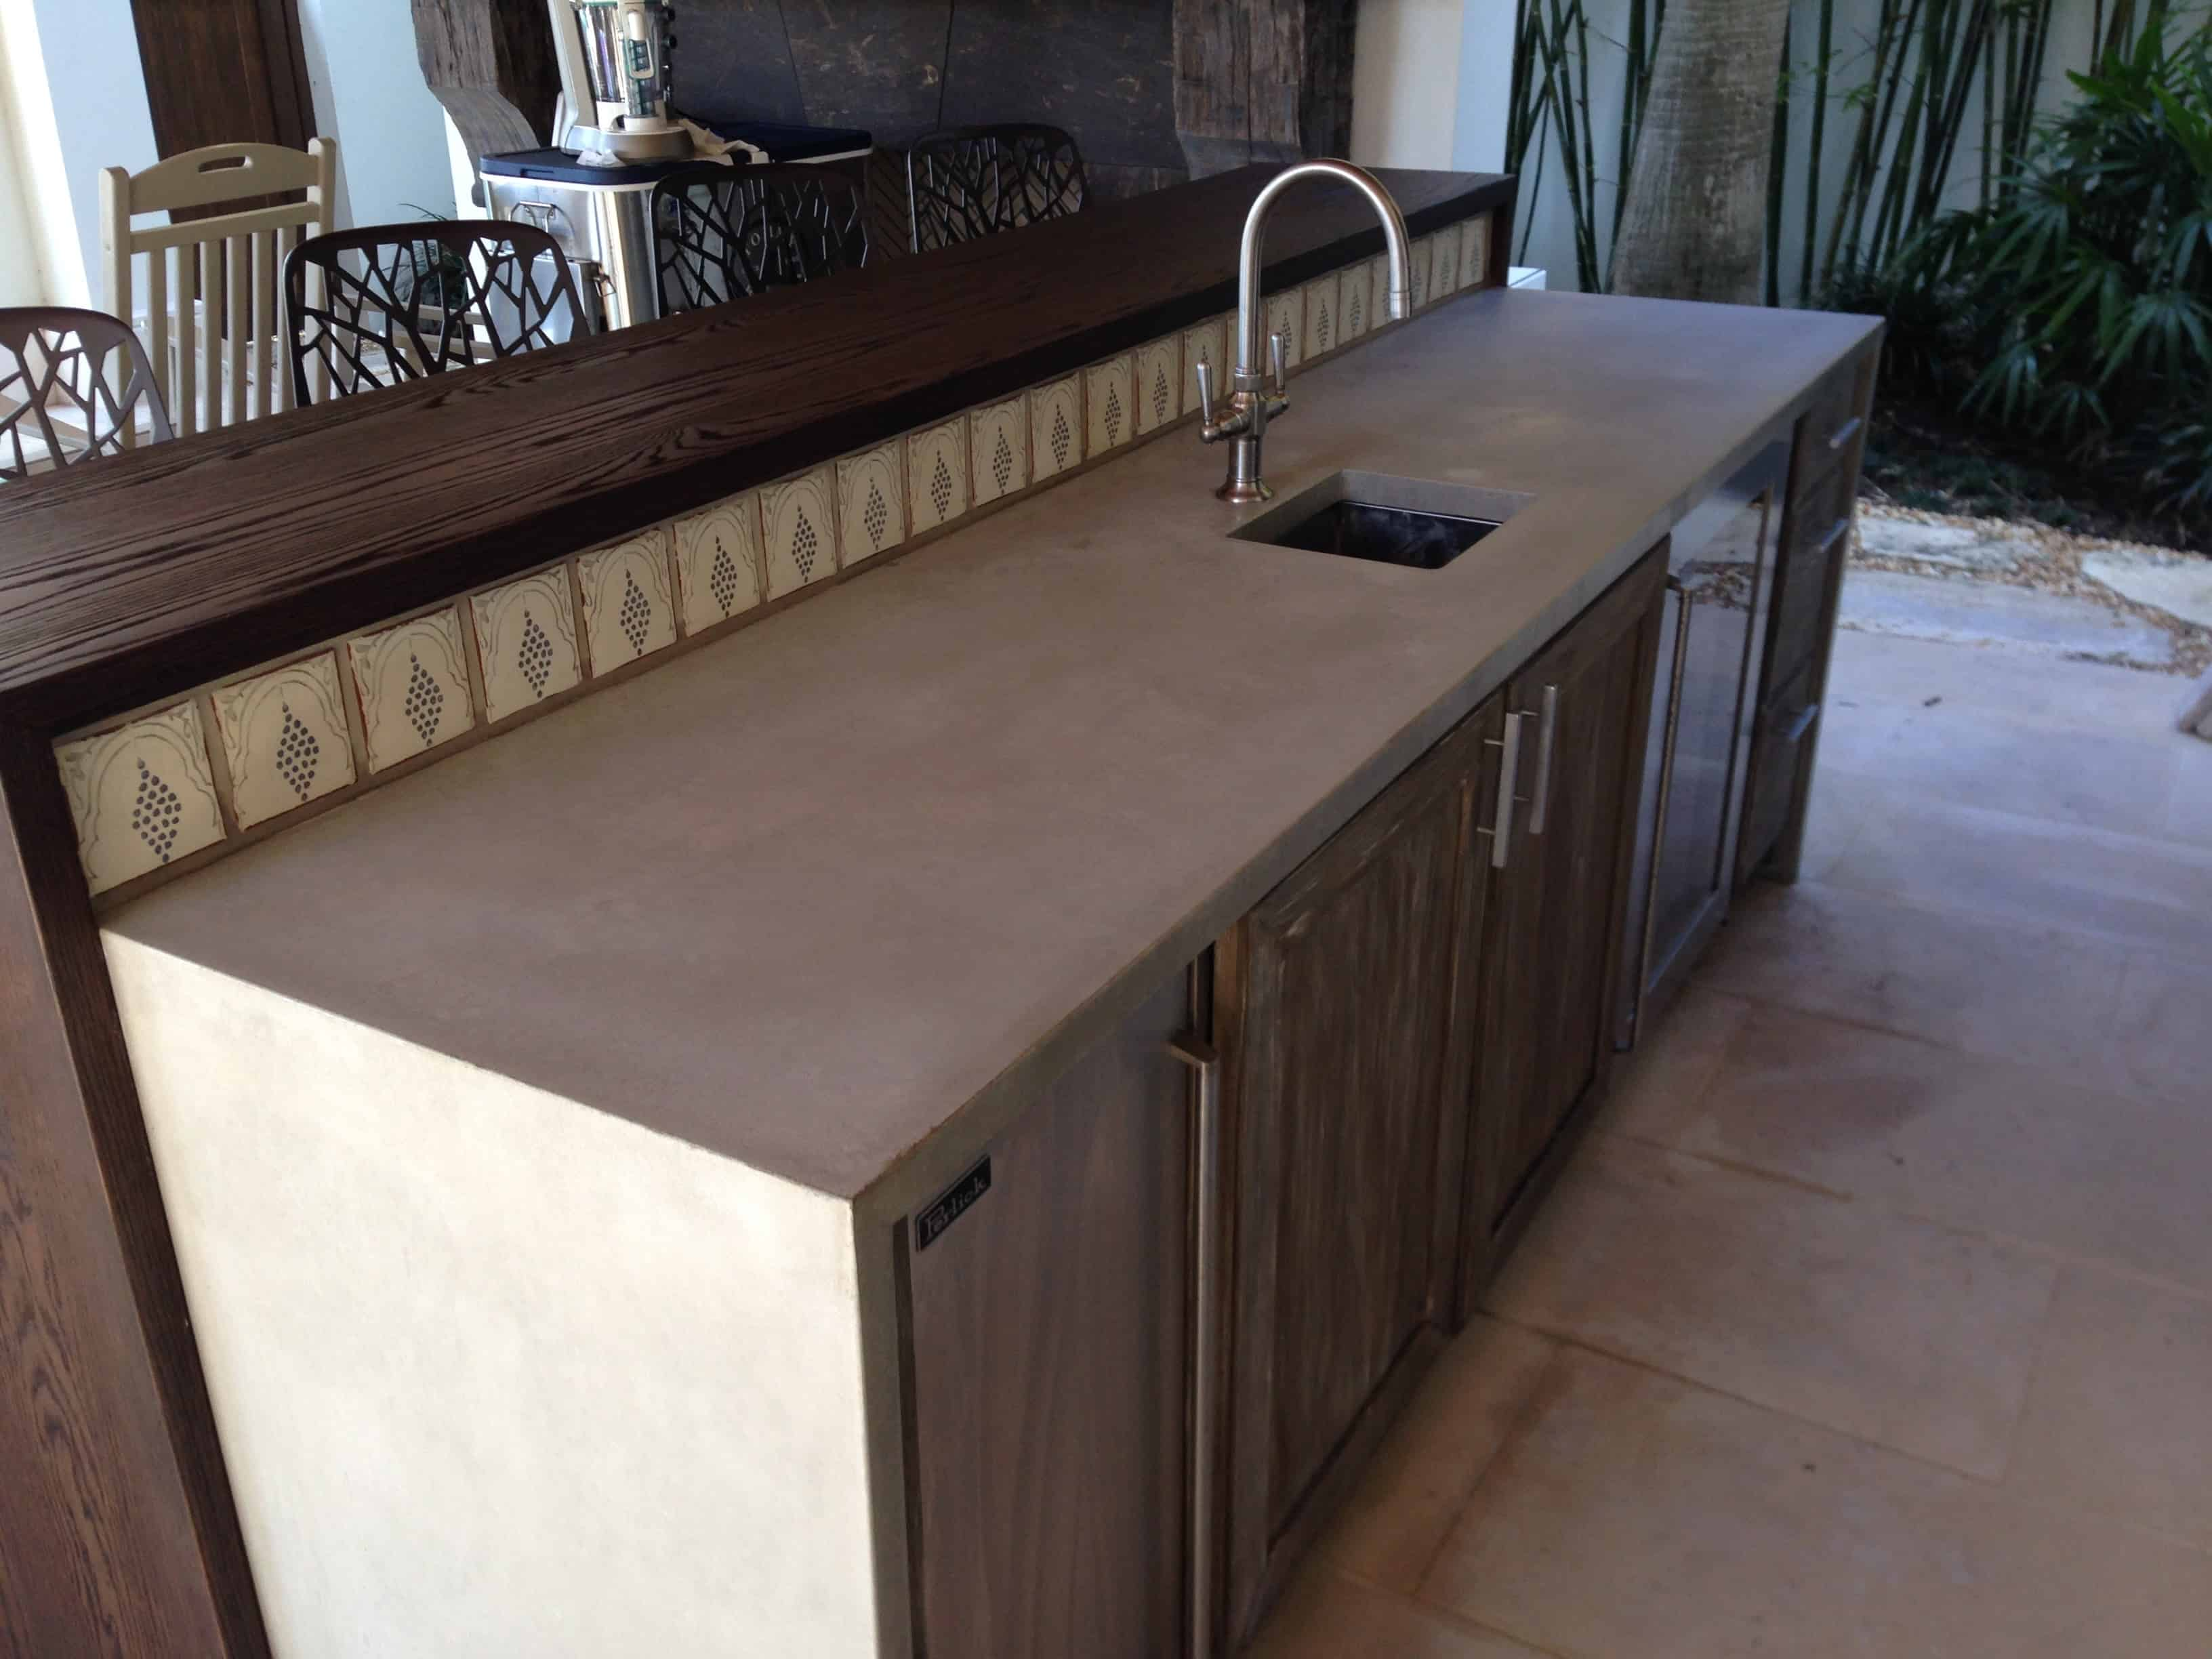 How Much For Concrete Countertops Concrete Countertop In Fort Lauderdale Fl Béton Studio